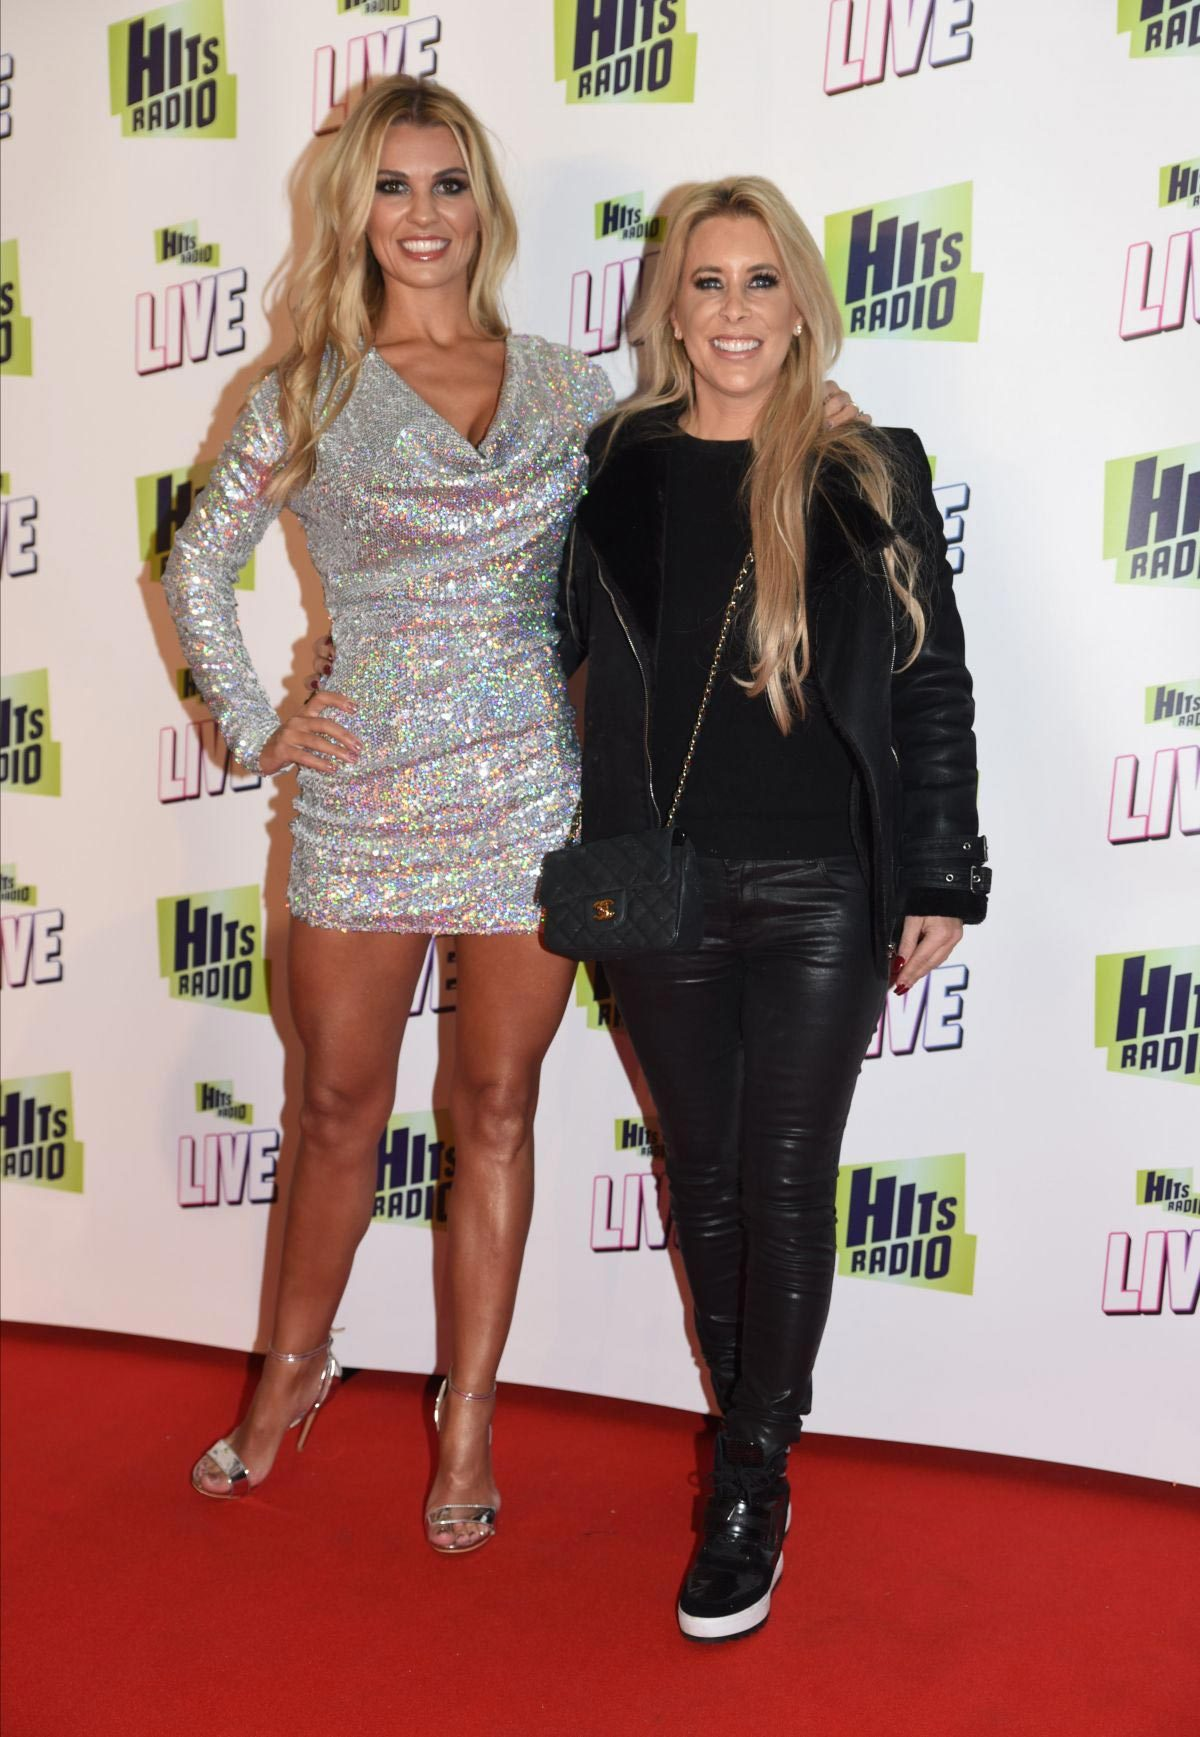 Christine McGuinness and Rachel Lugo at Hits Radio Live in Manchester 2018/11/25 1